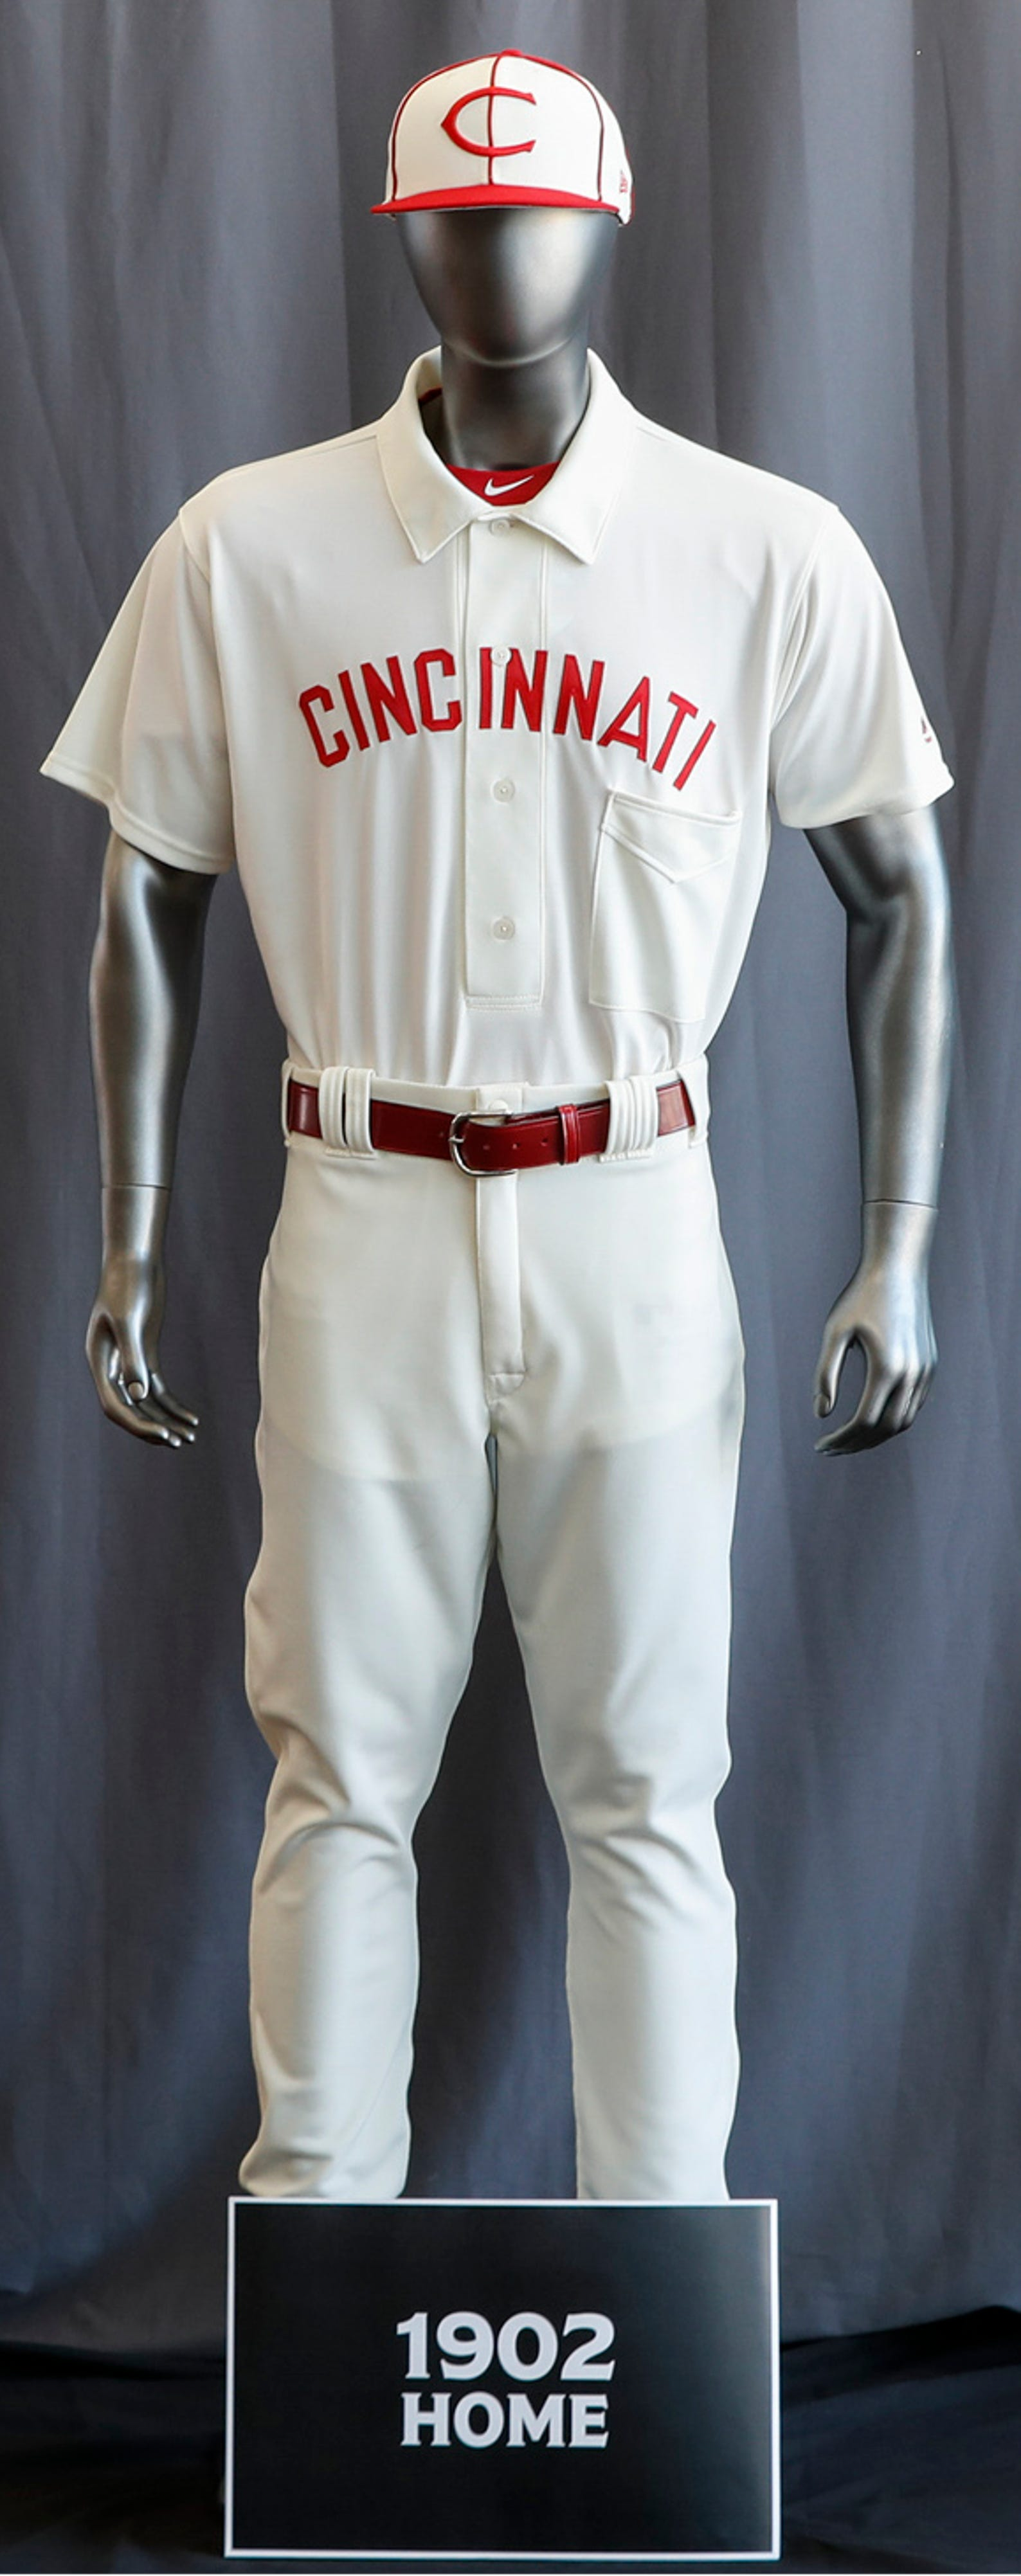 the latest 0cdb1 1c751 Photos: Check out the Cincinnati Reds retro uniforms ...